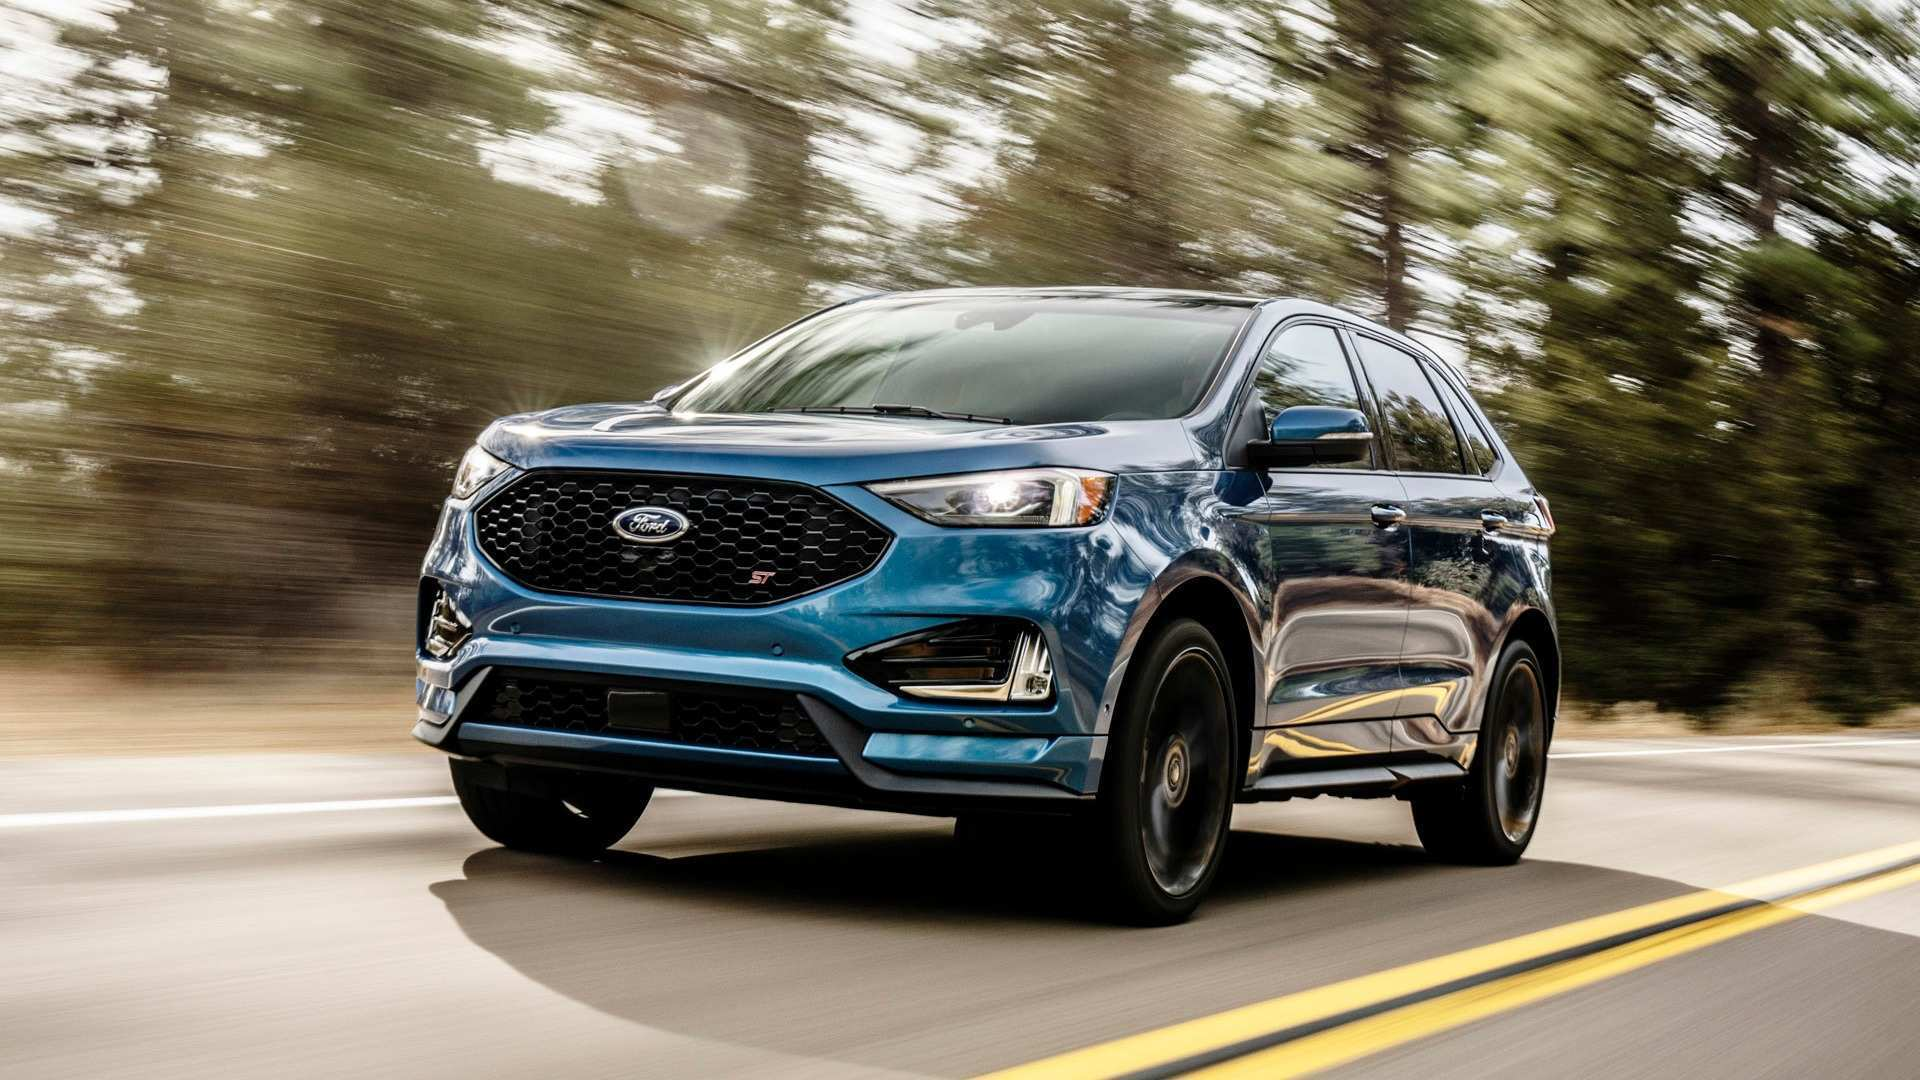 57 The Best 2019 Ford Edge Exterior